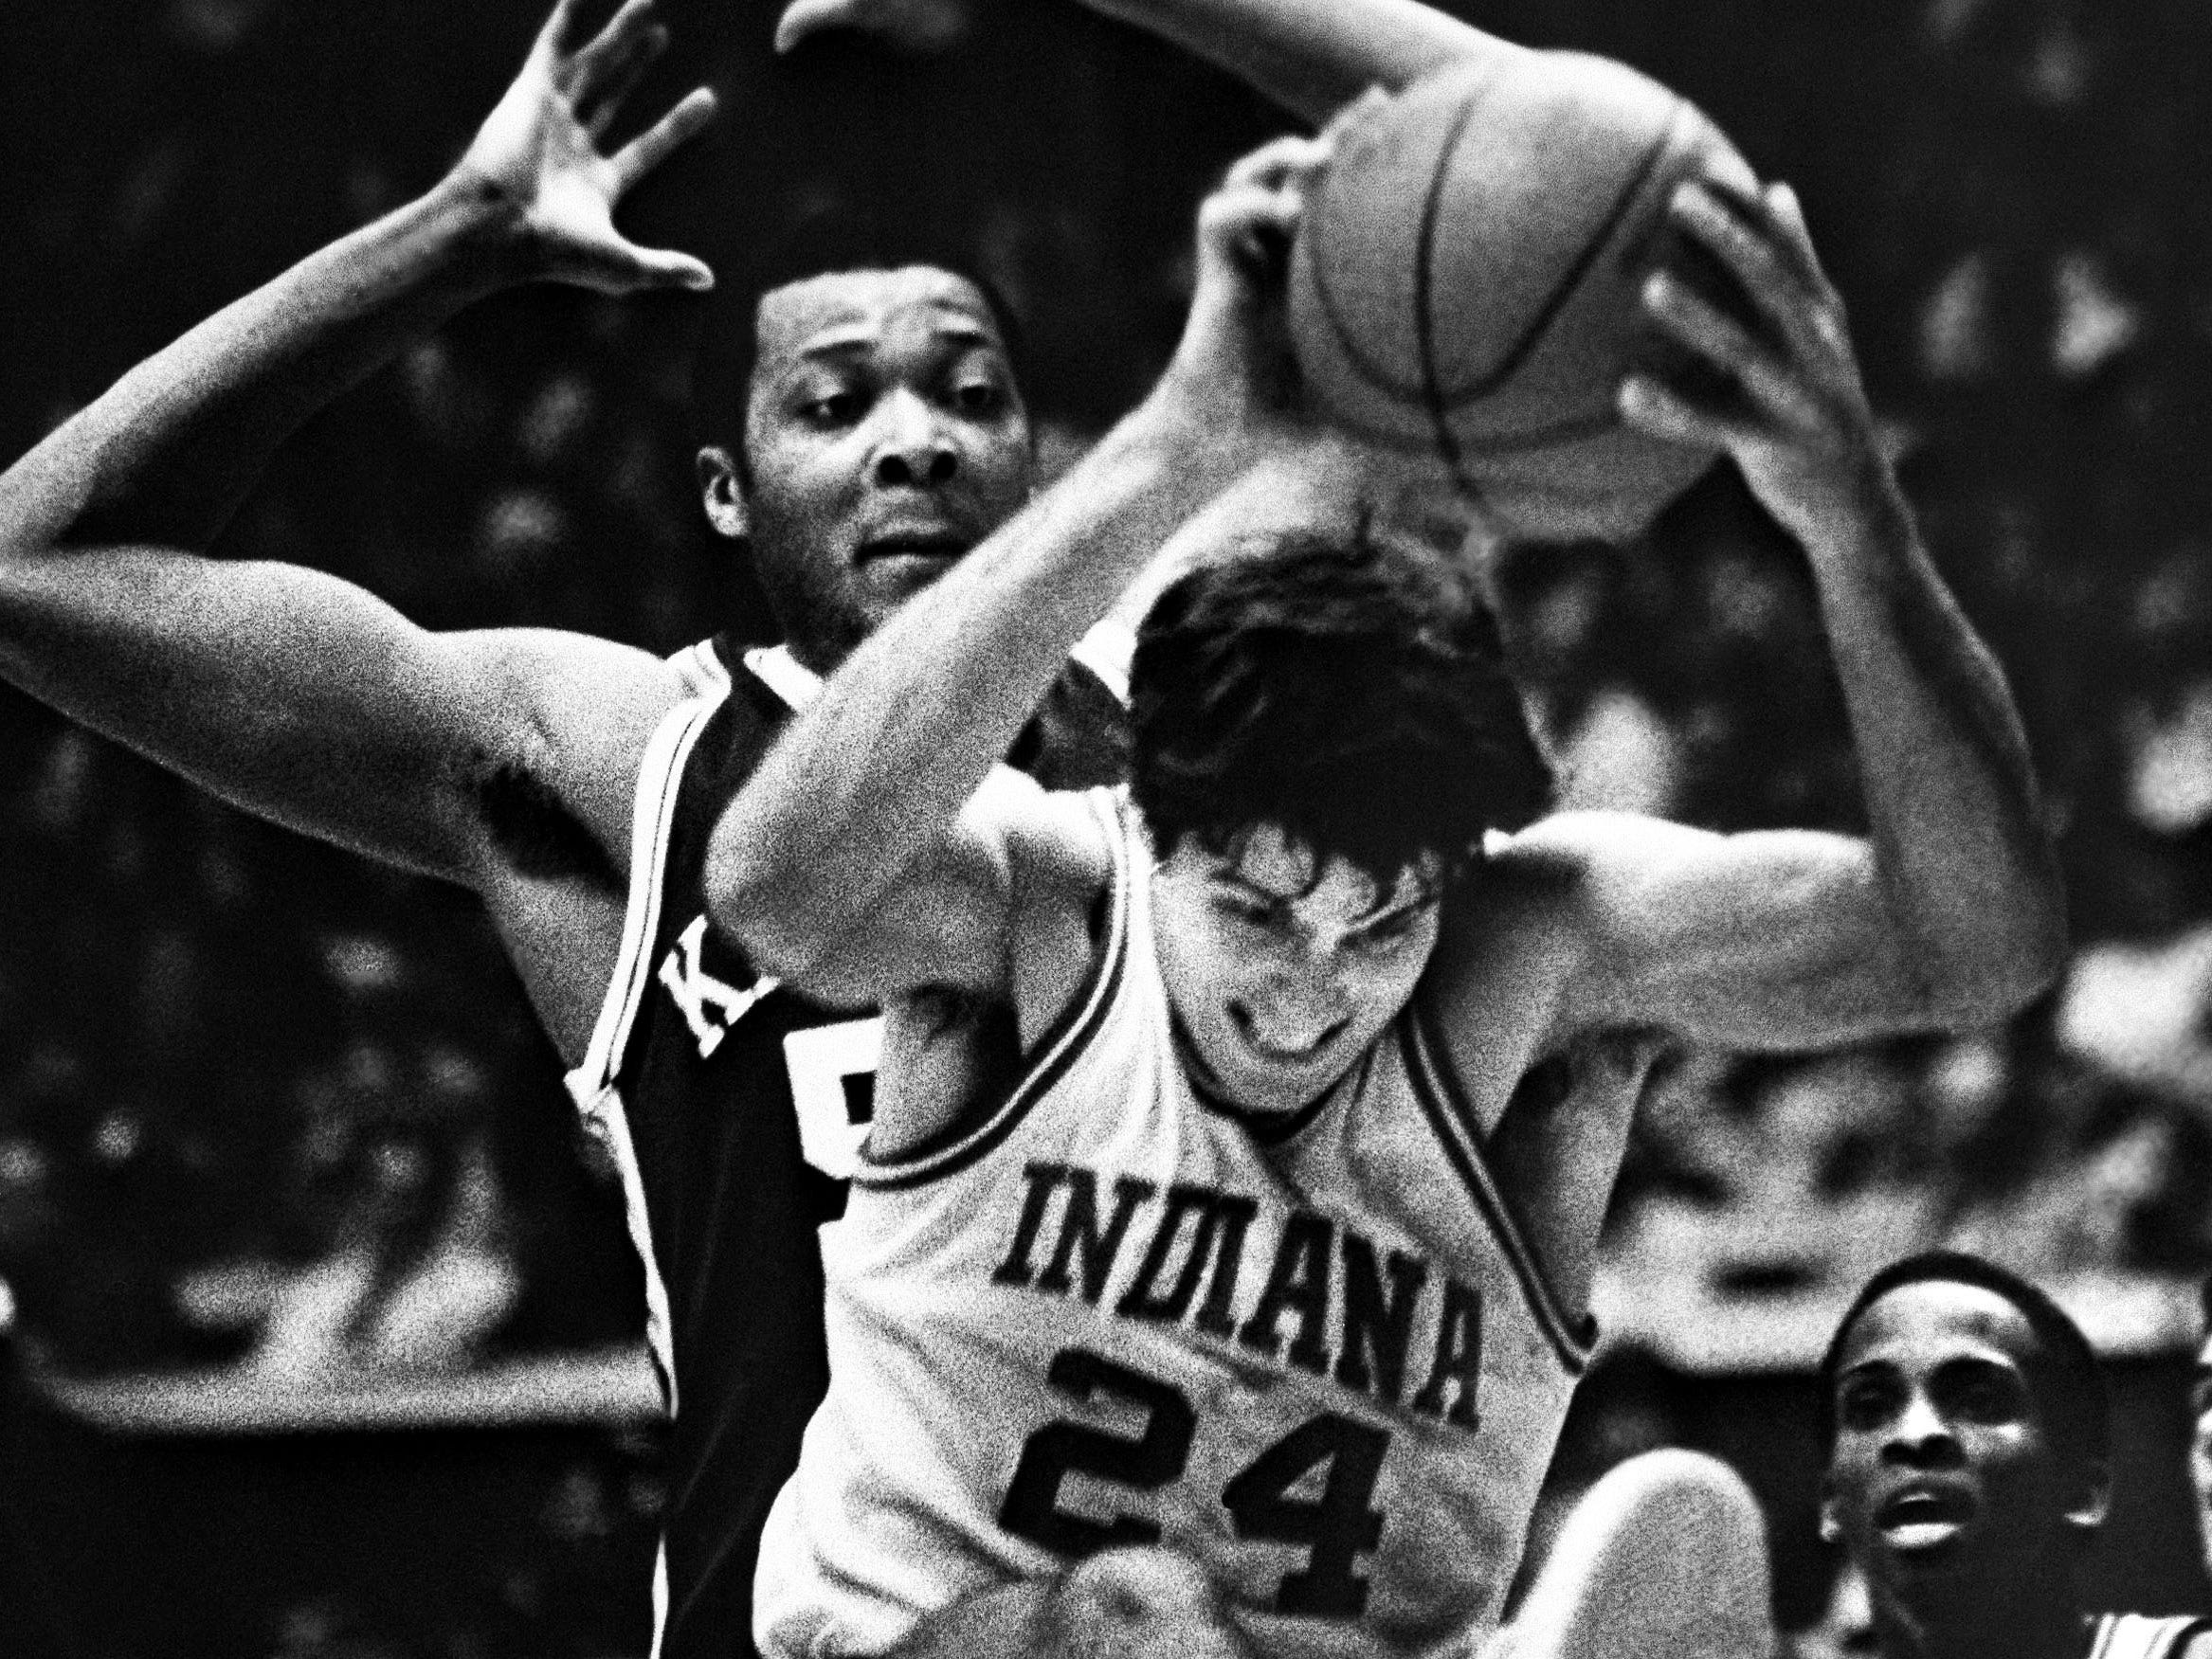 Indiana's Randy Wittman grabs a rebound in front of Melvin Turpin of Kentucky in Bloomington, December 22, 1982.